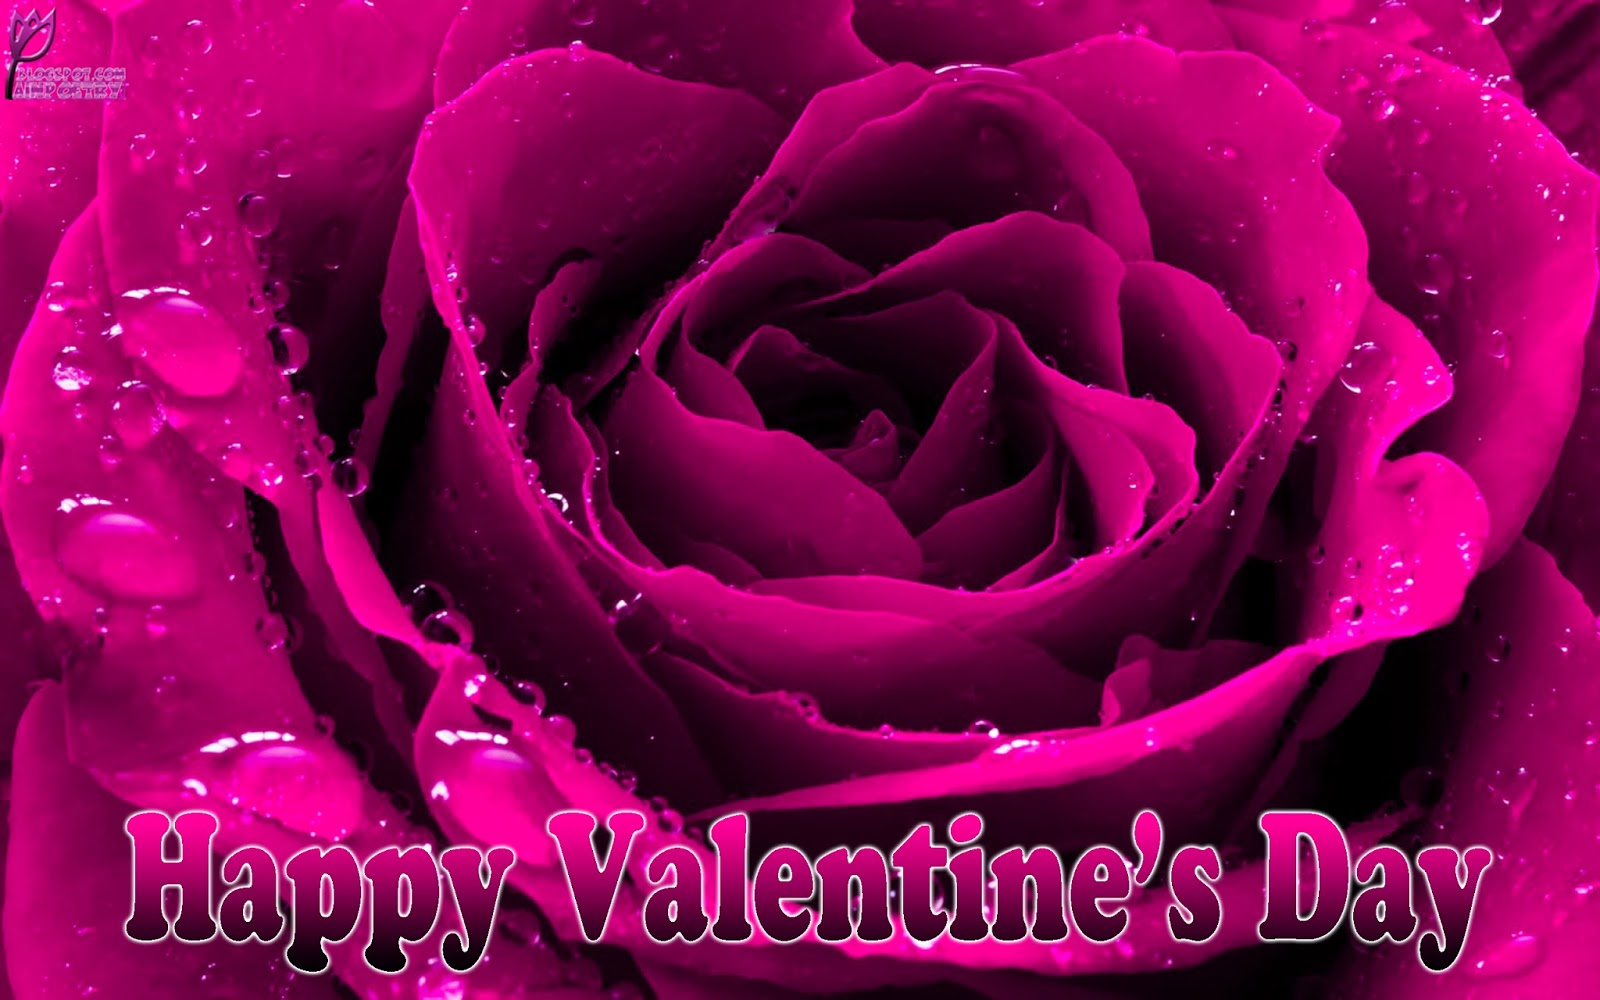 Happy-Valentines-Day-Wallpaper-With-Flower-A-Special-Gift-Image-HD